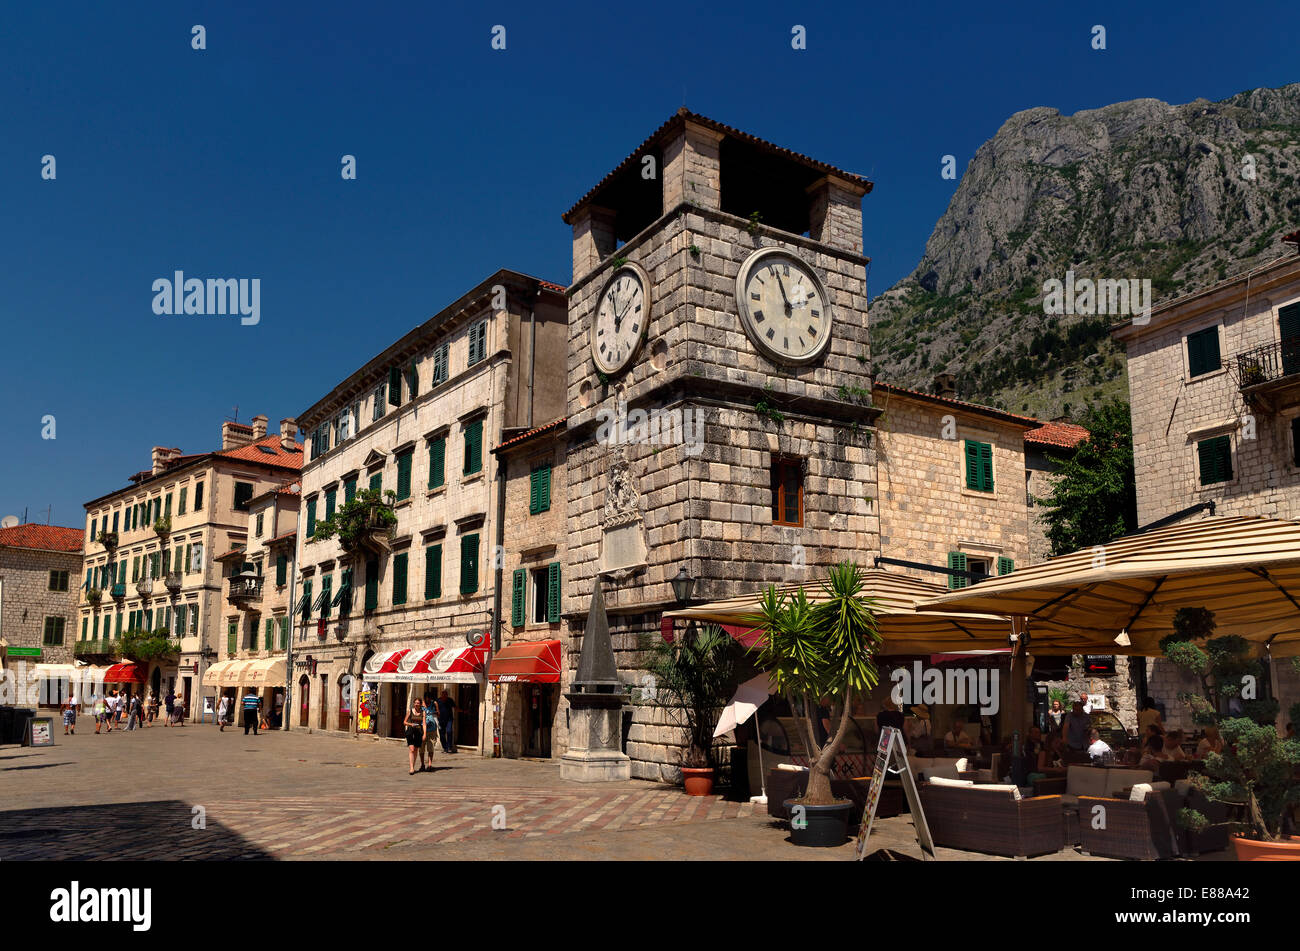 Clock tower and Square of Arms at Kotor Old Town, Montenegro. Stock Photo